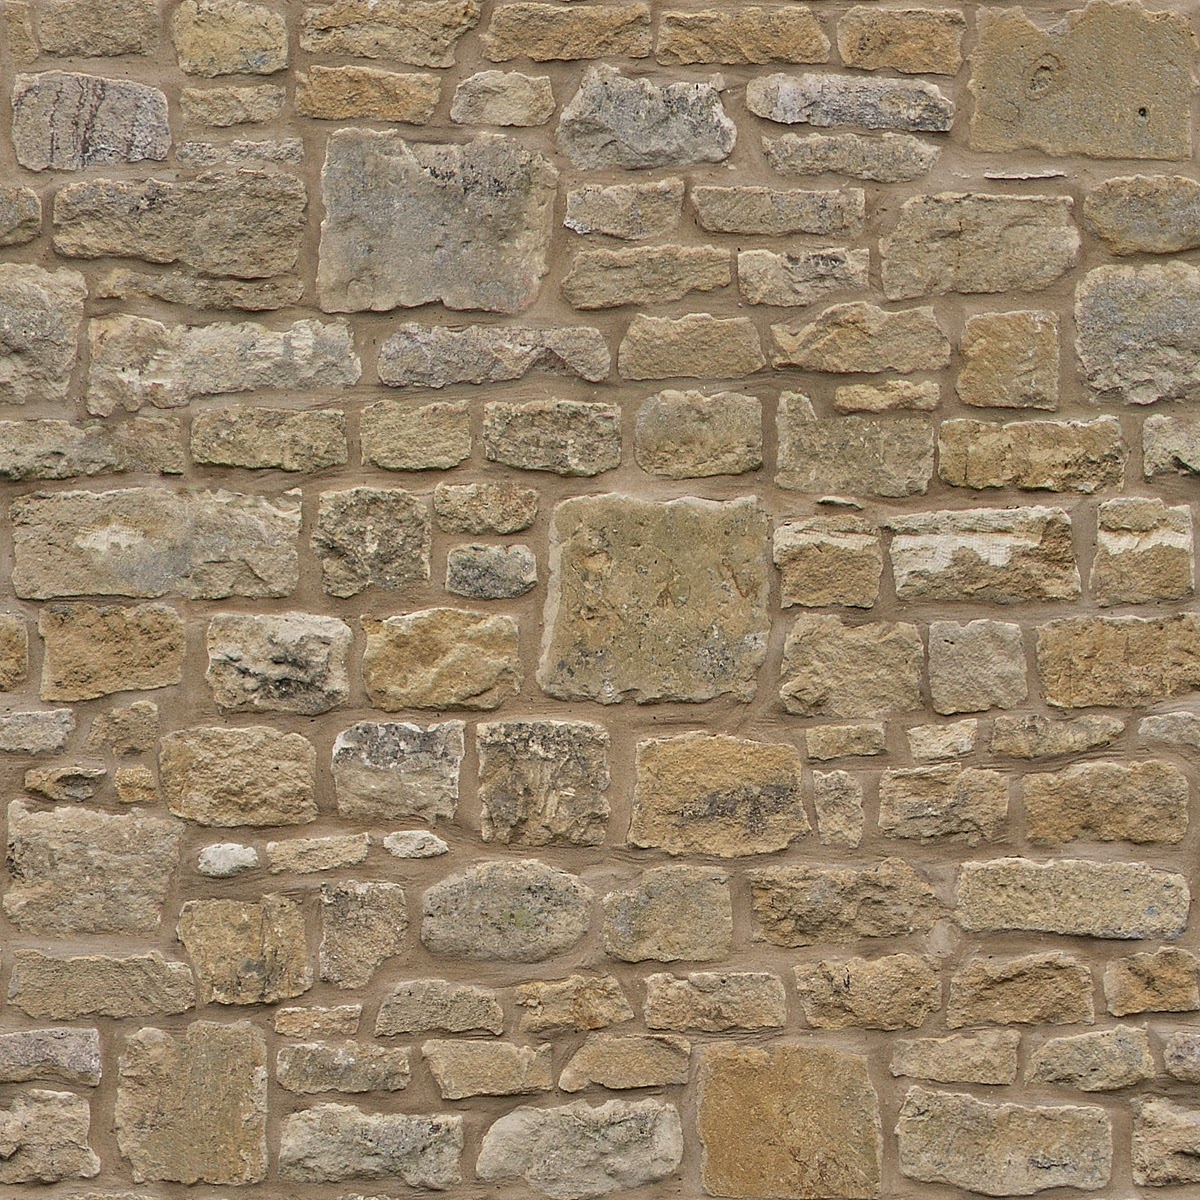 Tileable Stone Wall Texture + (Maps) | Texturise Free ...